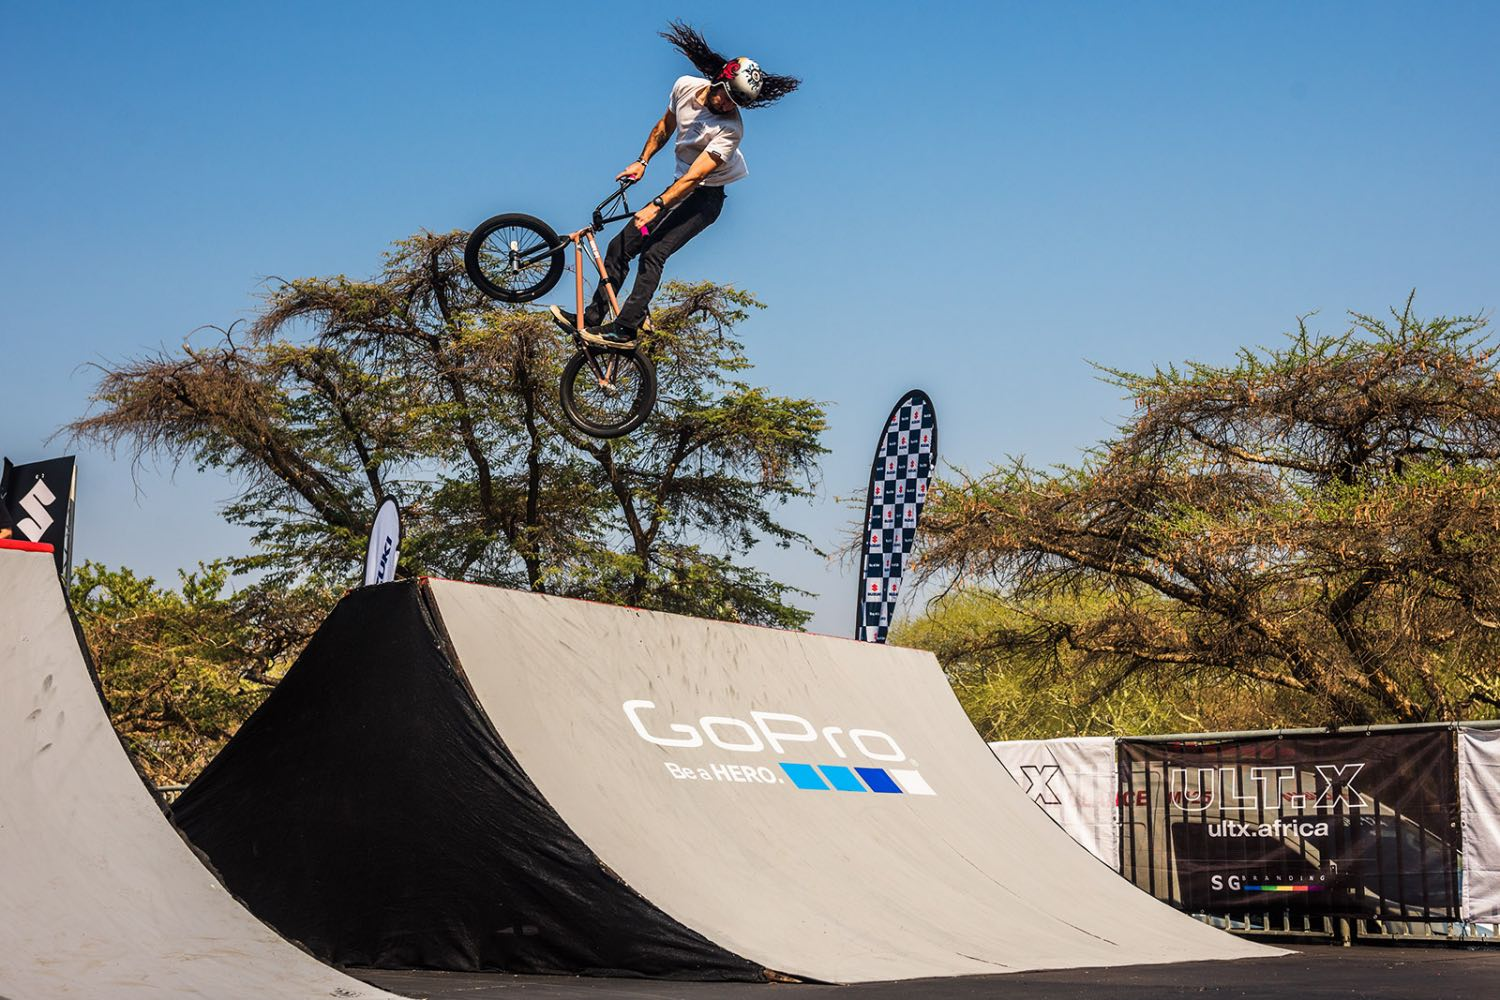 Vincent Leygonie competing in the BMX contest at ULT.X 2021